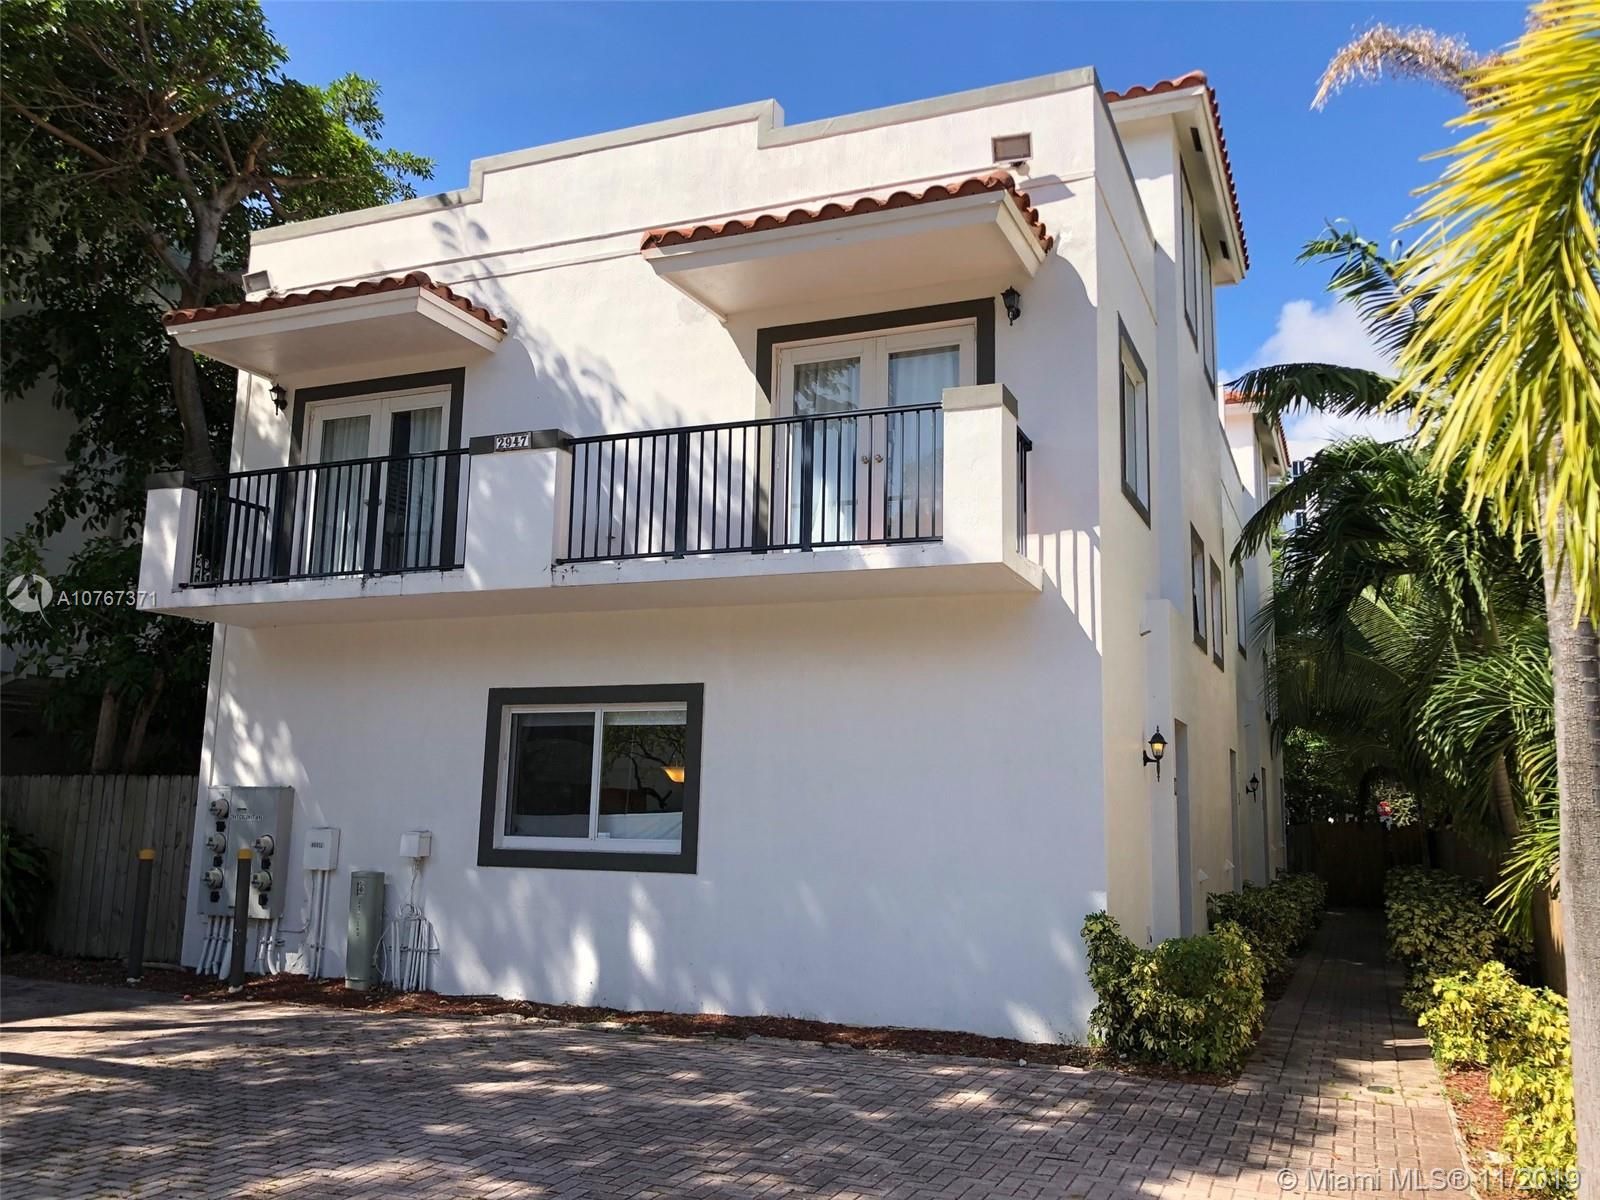 2947  Coconut Ave #3 For Sale A10767371, FL